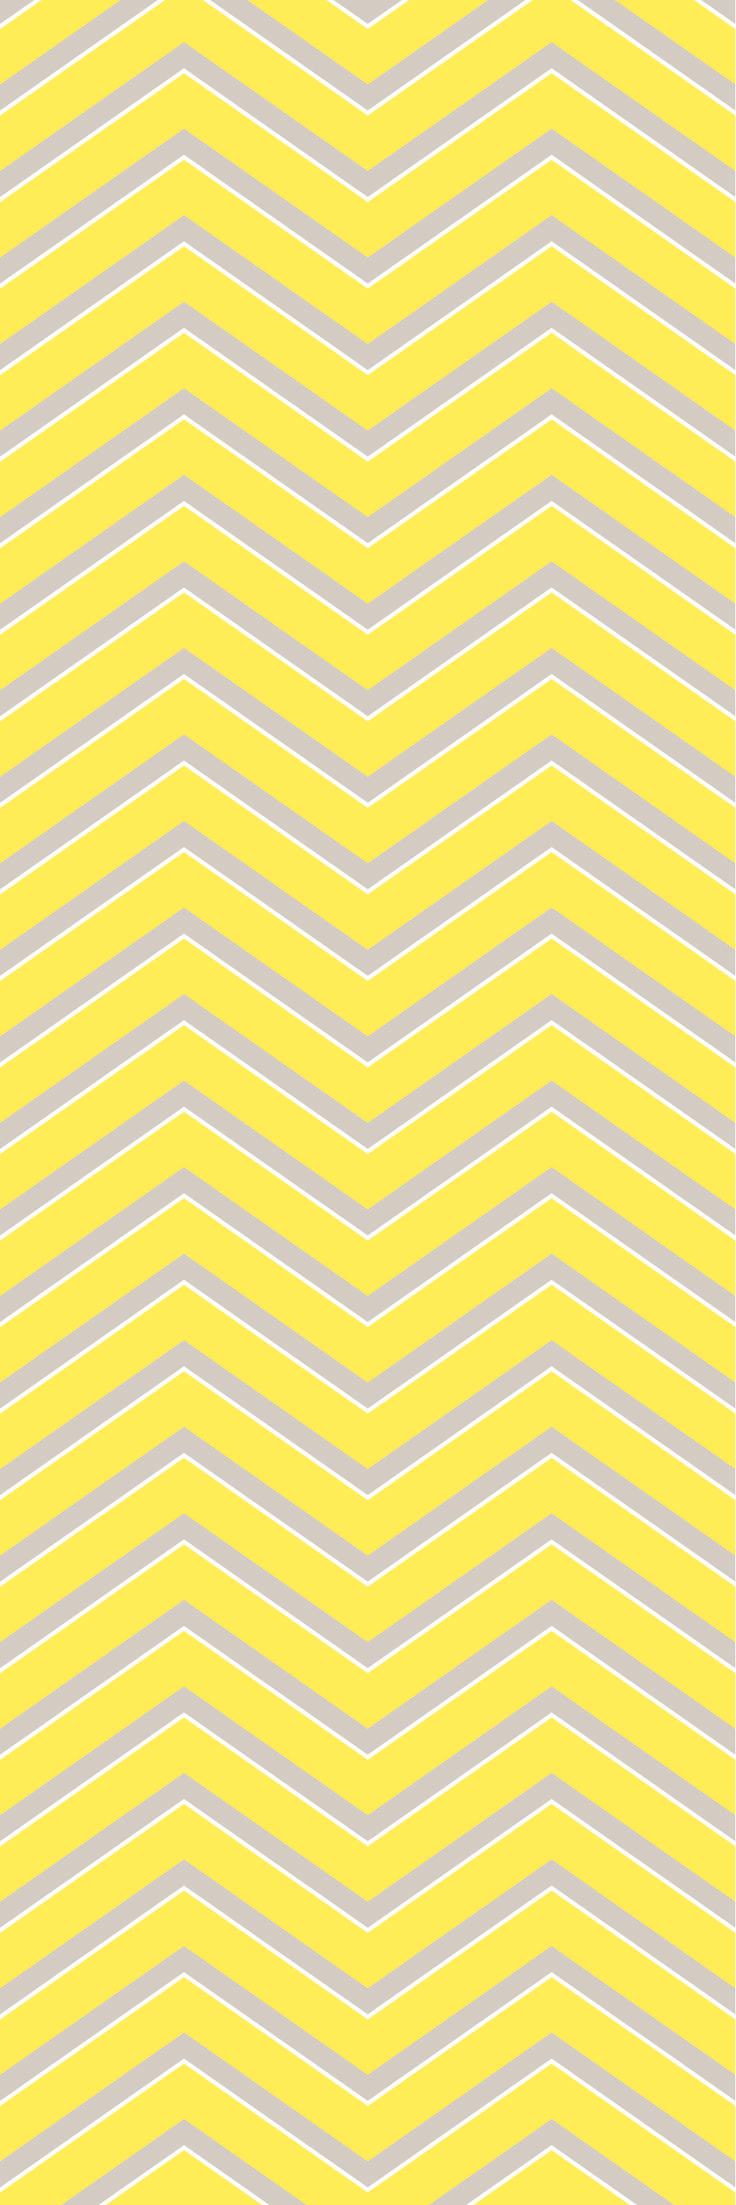 Custom printed Chevron wallpaper from the 'DUCKLING' colour range #chevron #wallpaper #muurgraphics